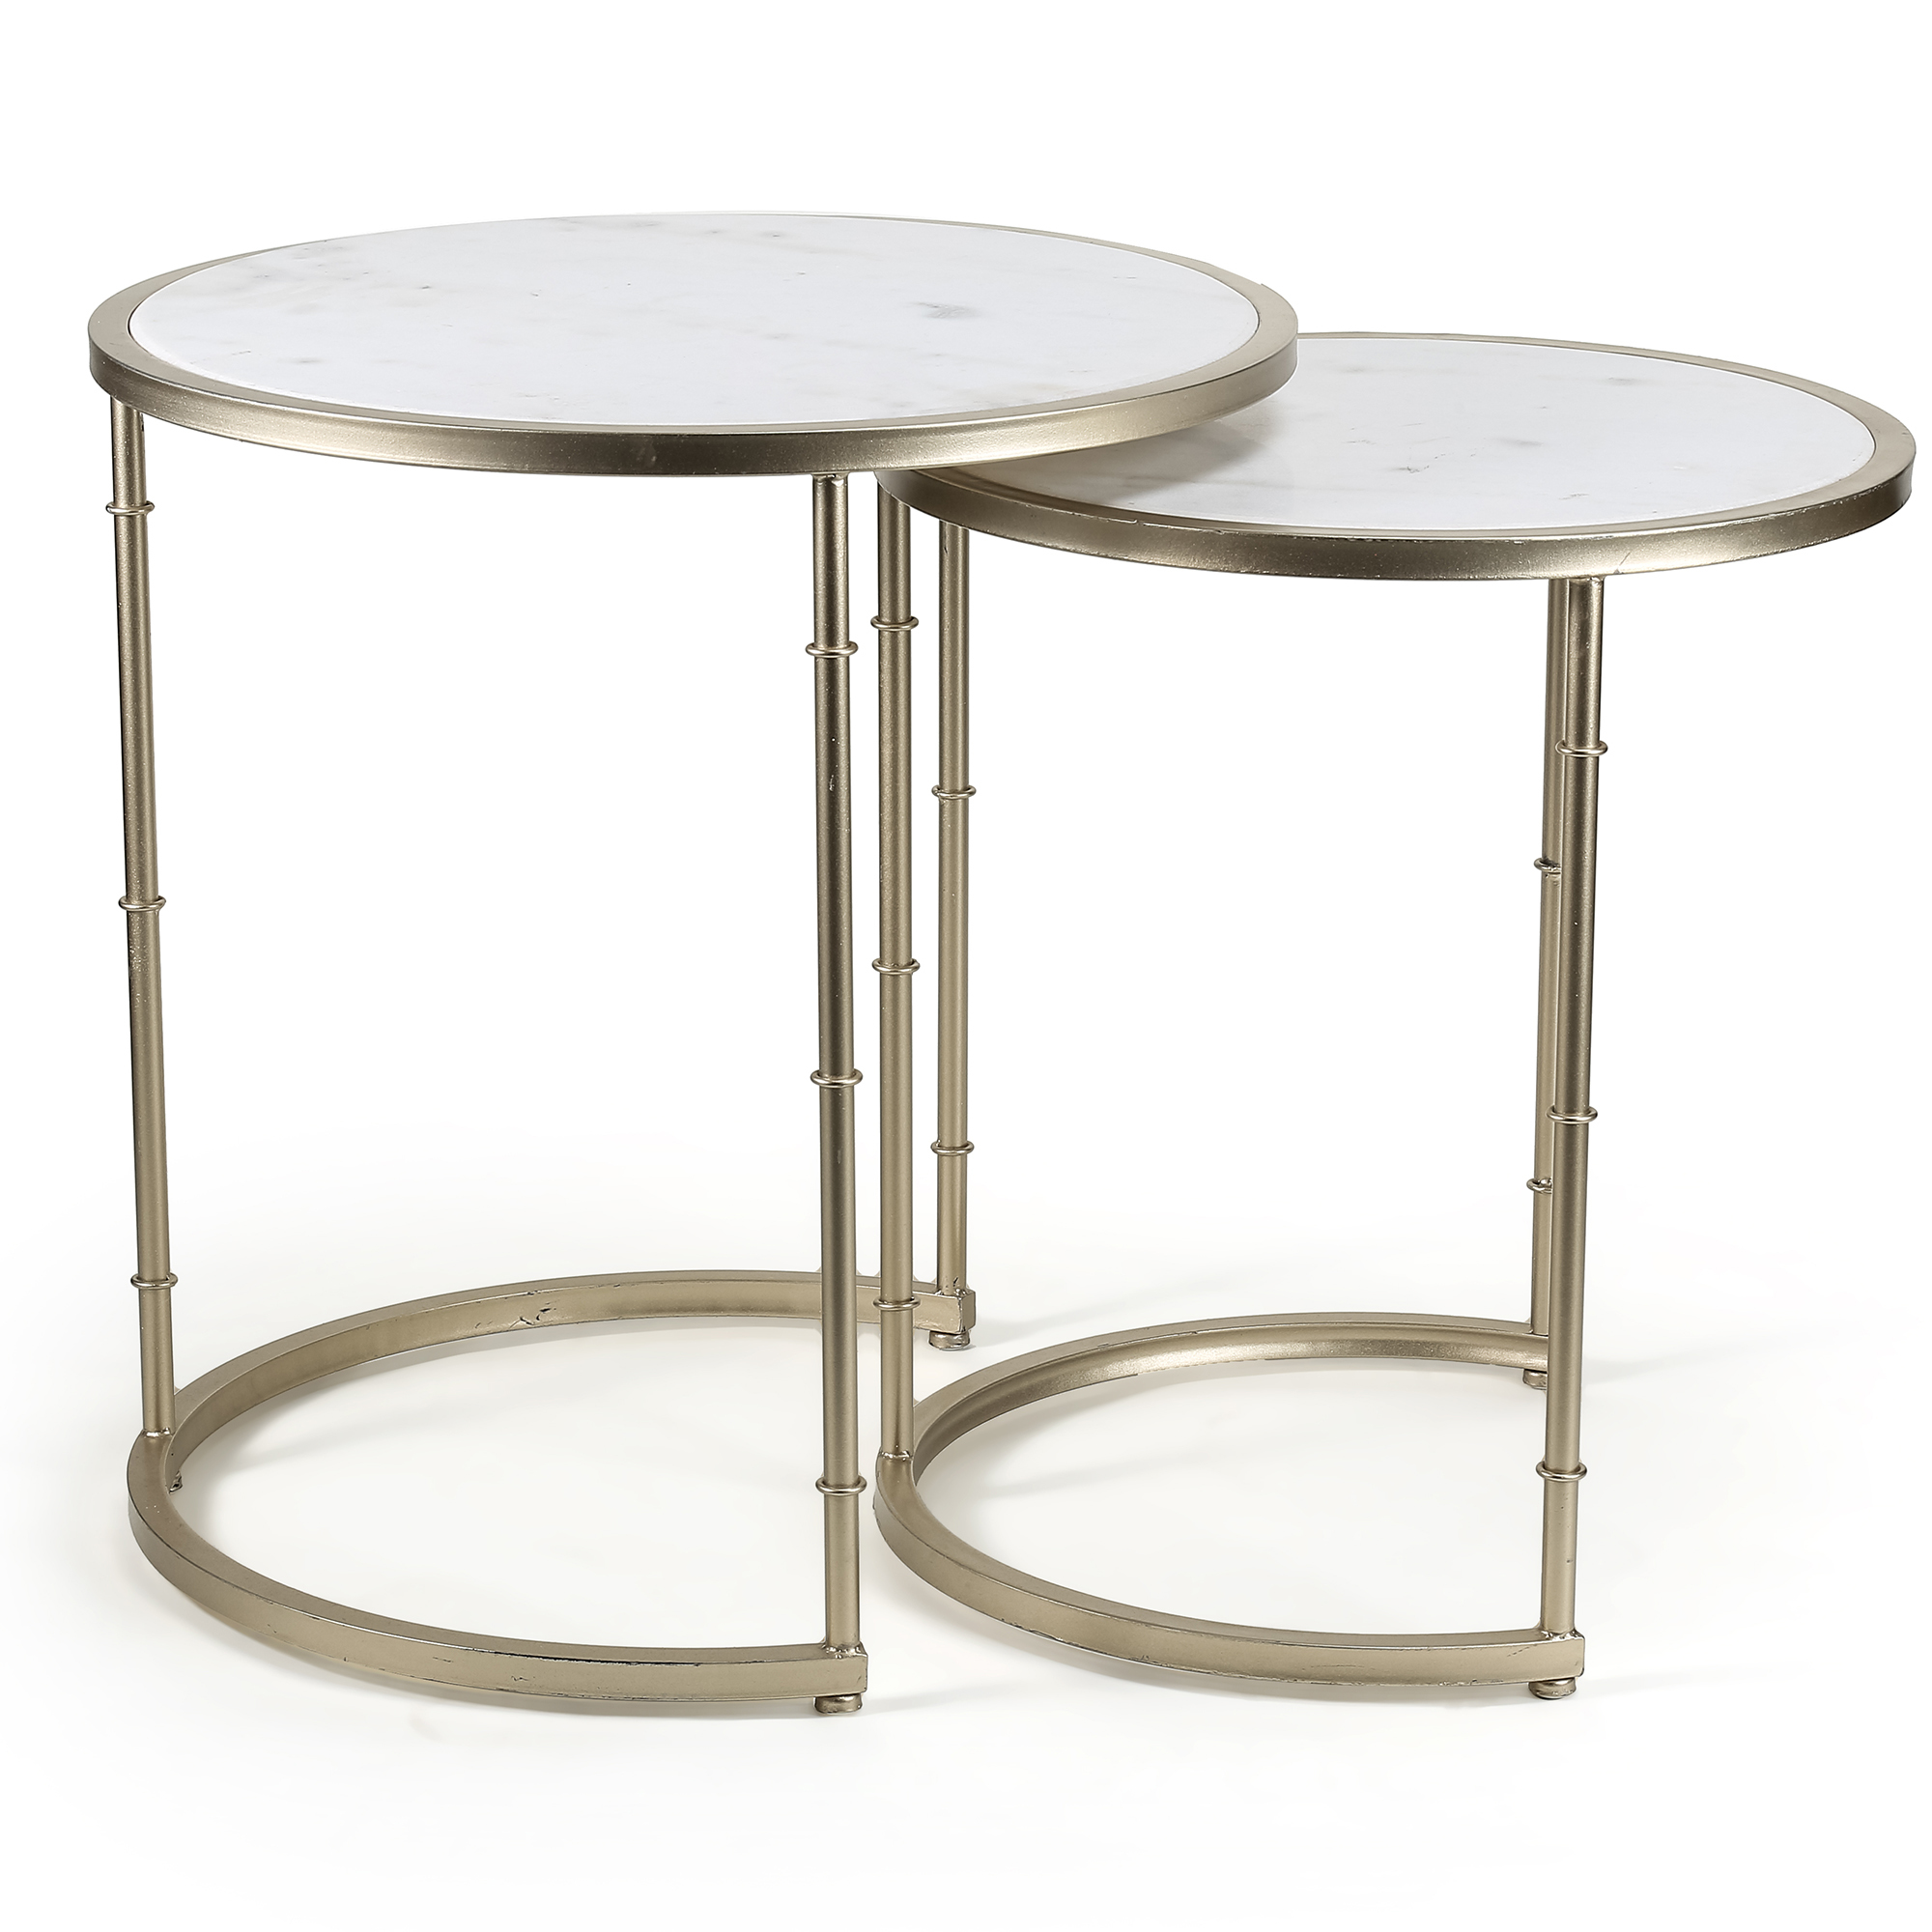 set temple tables eclipse listed of following under also table the sku manufacturer sometimes assorted numbers webster is marble